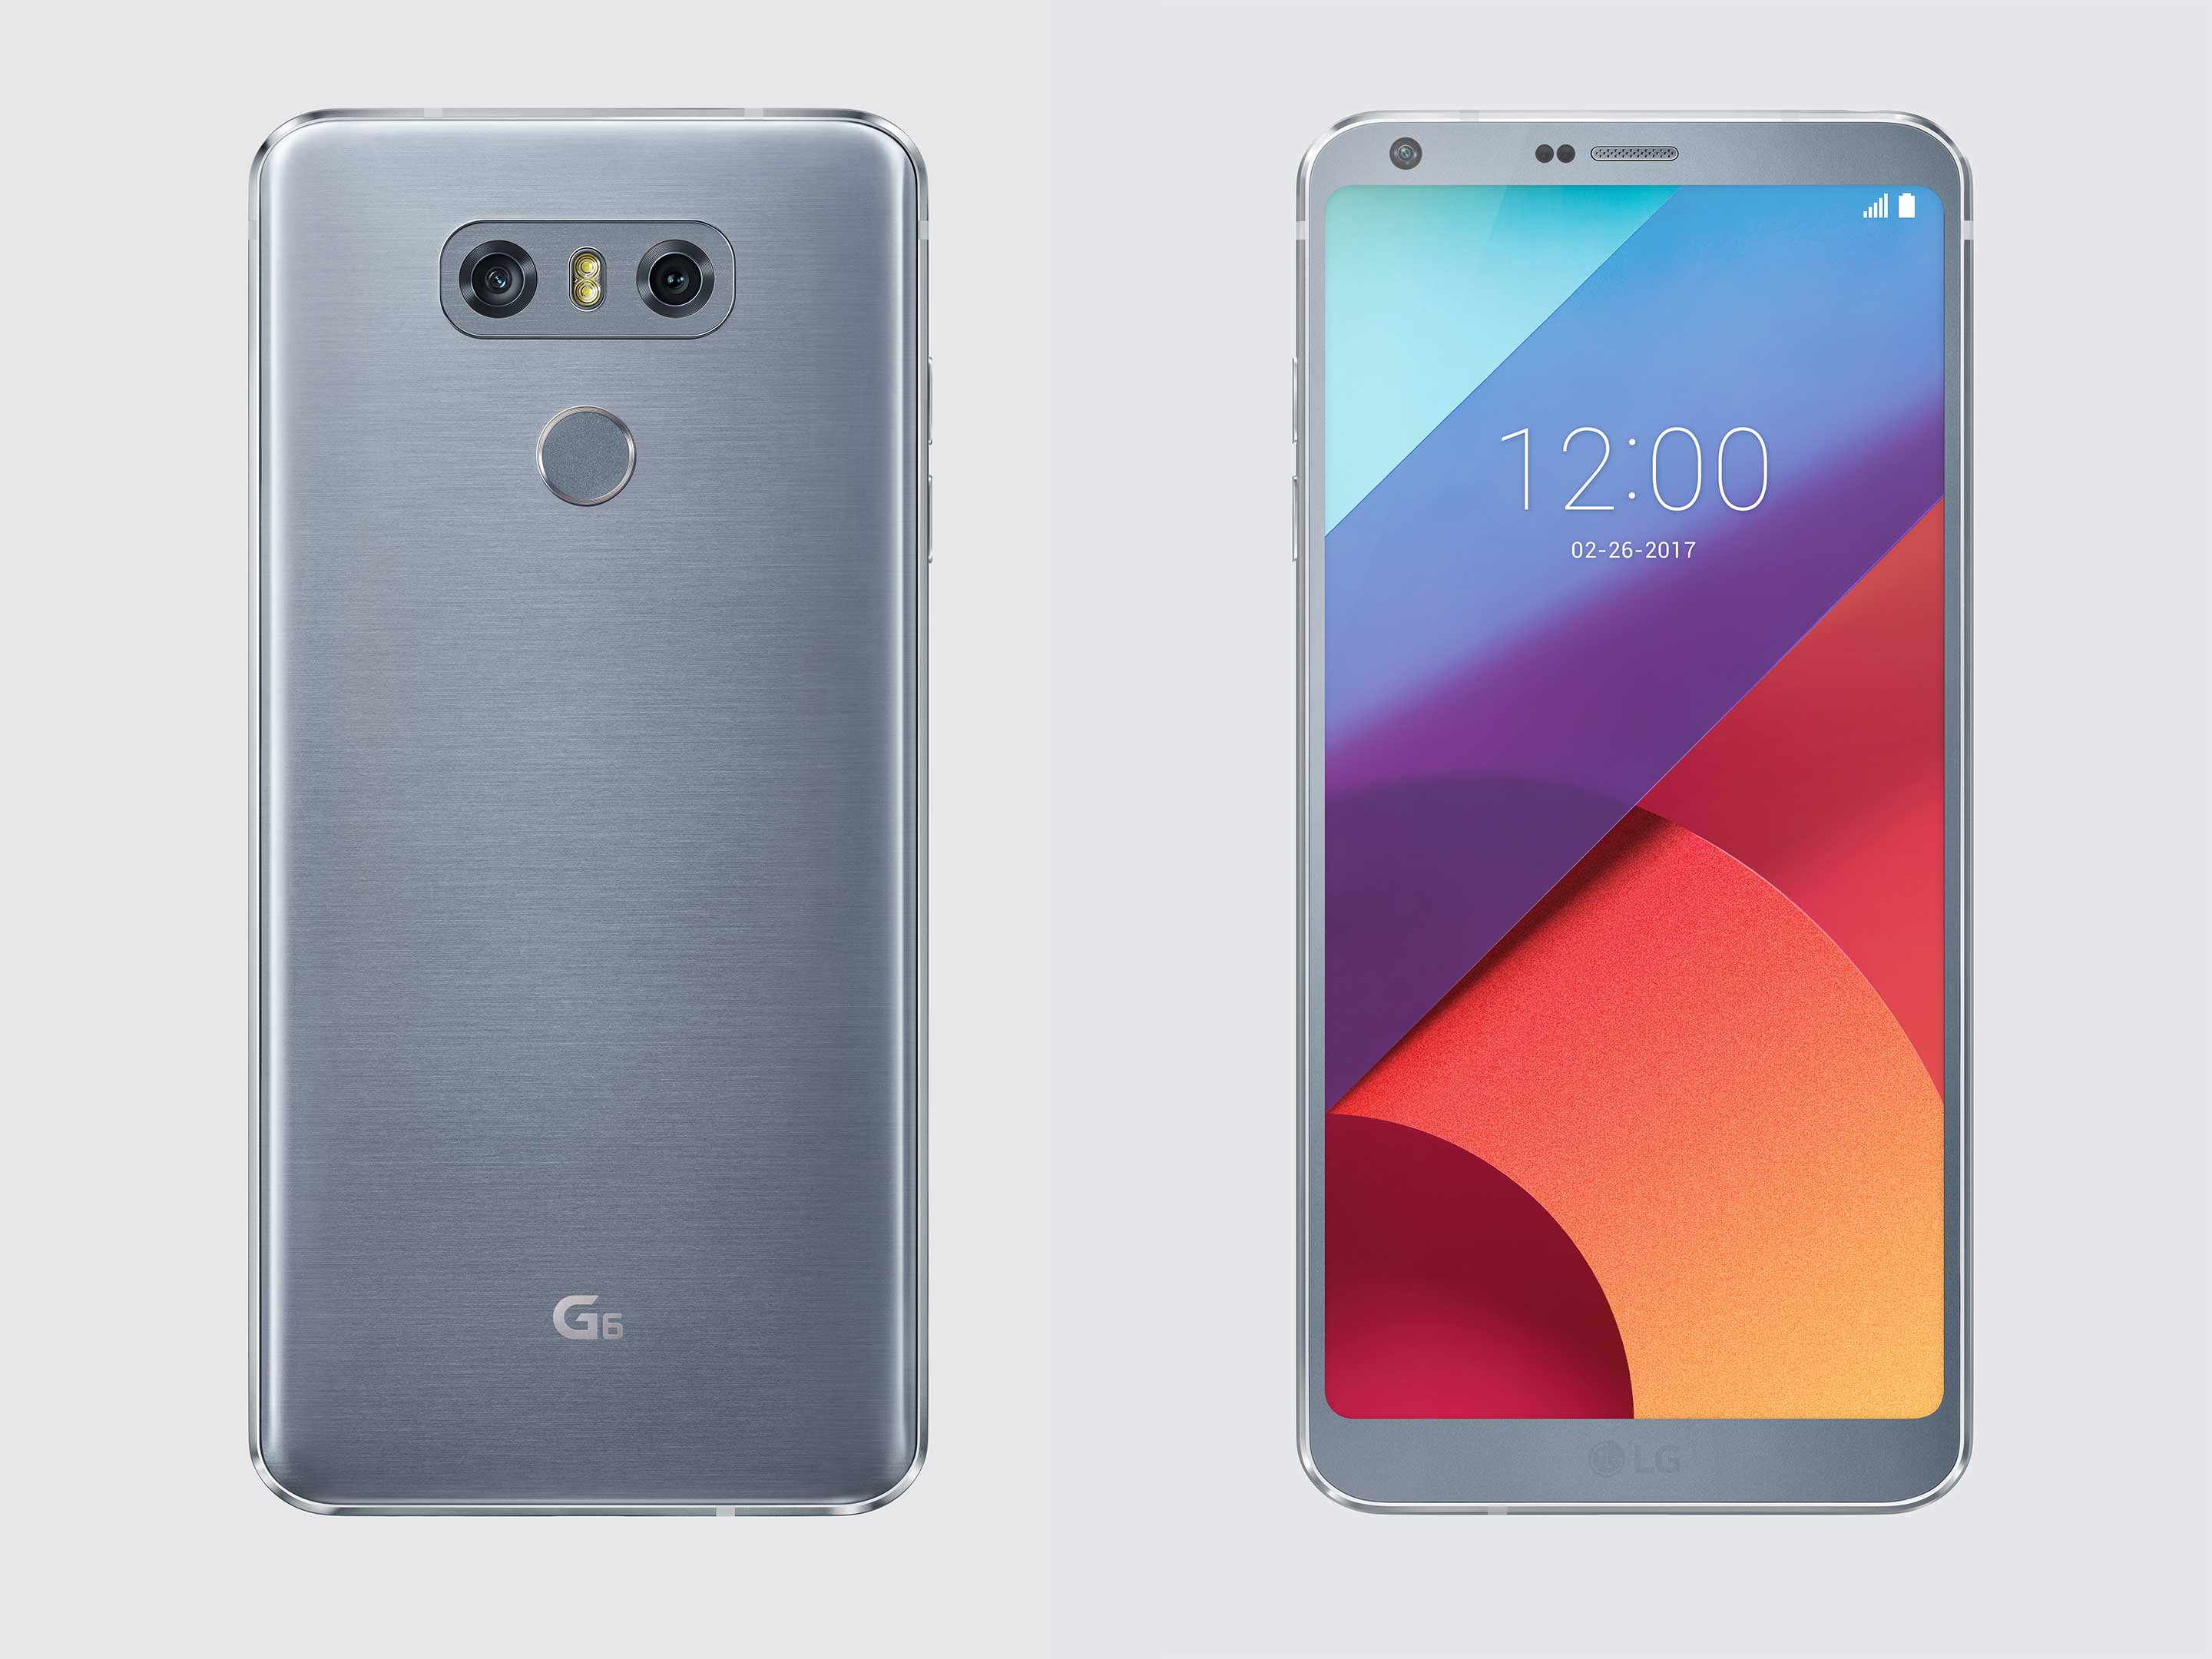 render of the LG G6